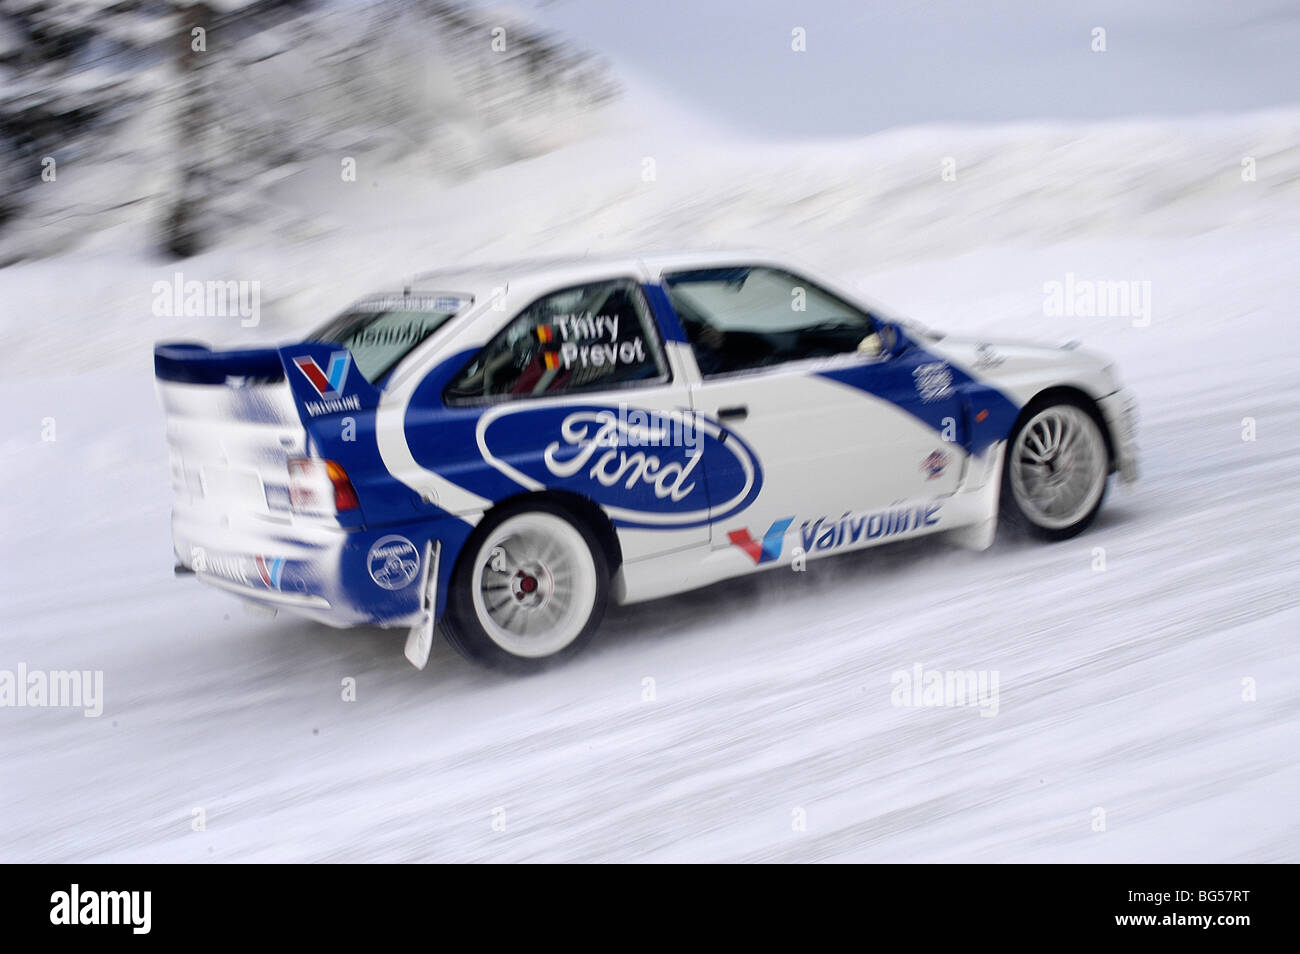 Ford Escort Cosworth Stock Photos & Ford Escort Cosworth Stock ...